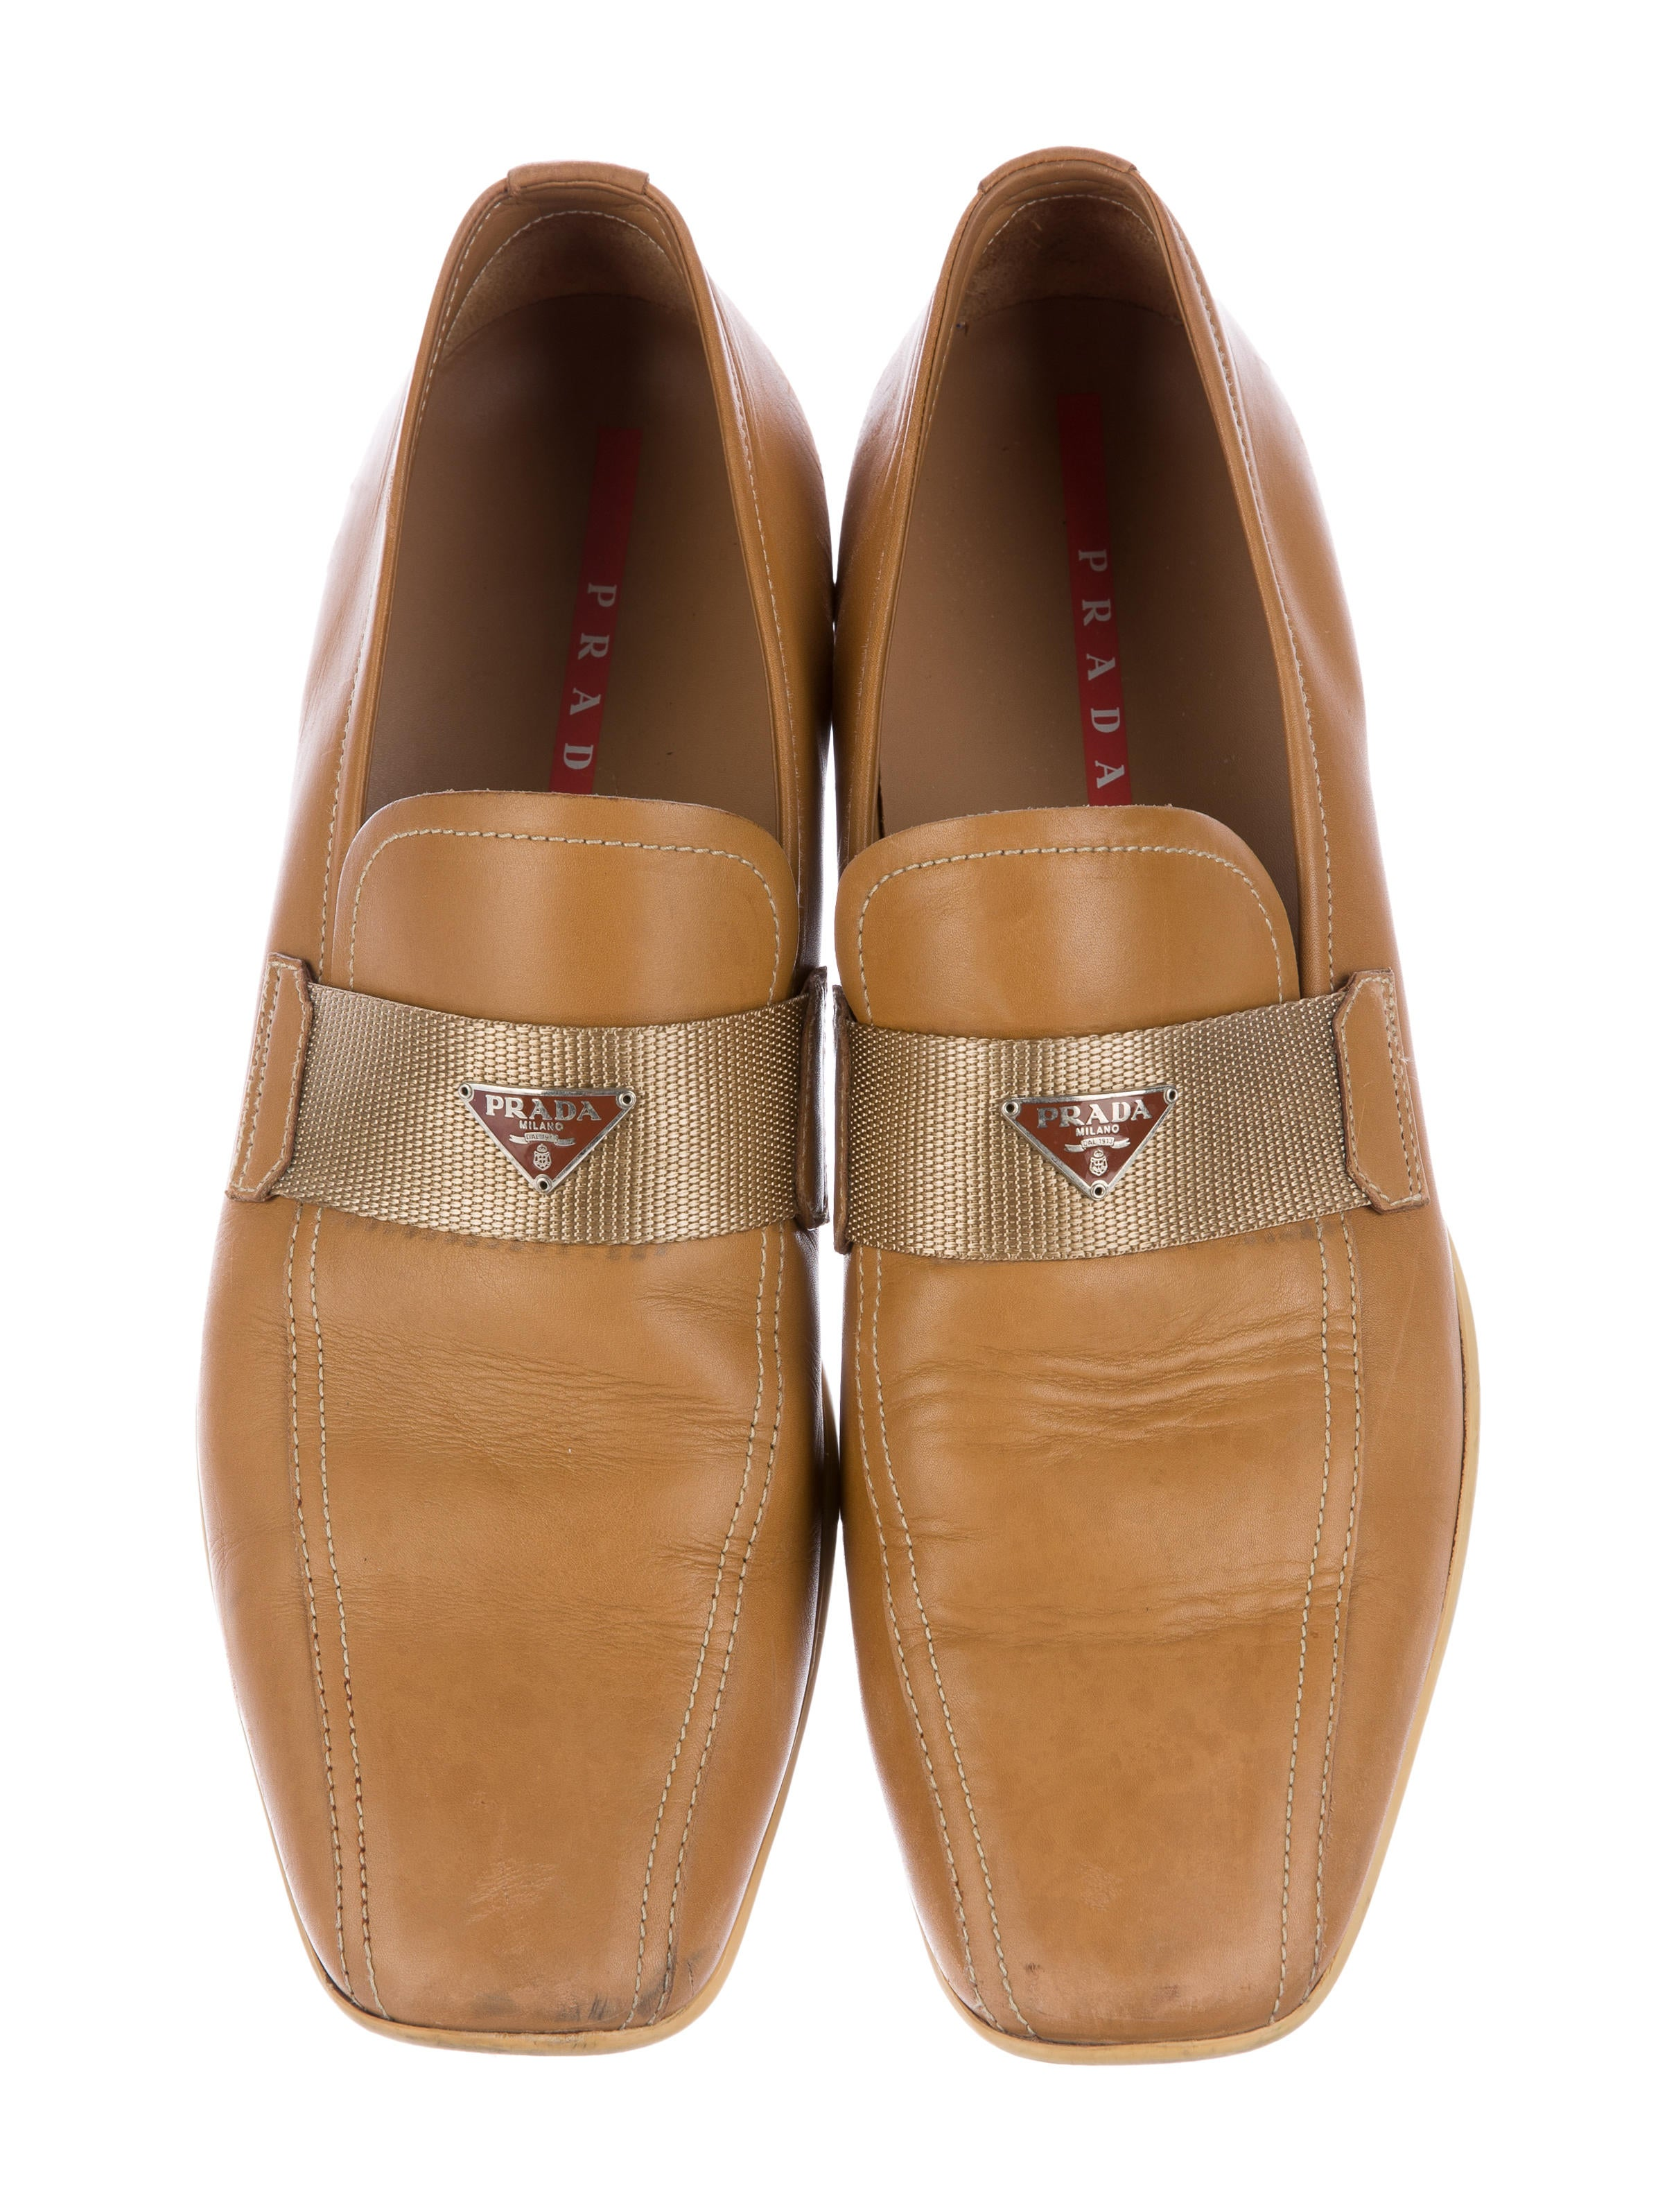 prada sport leather dress loafers shoes wpr40795 the